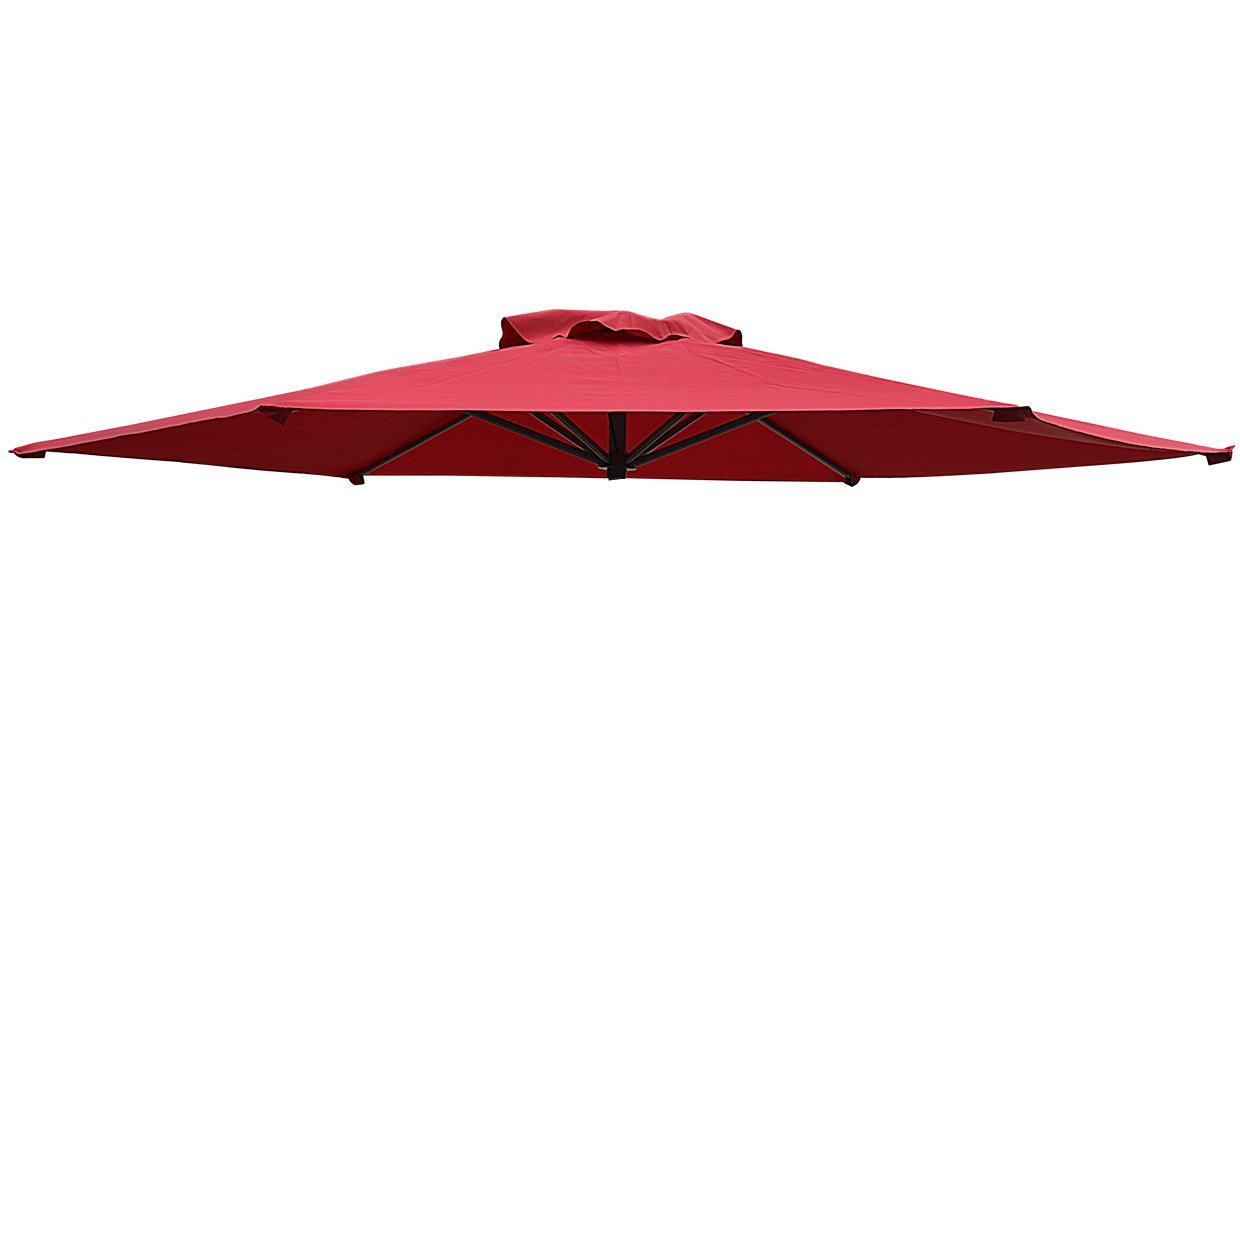 Strong Camel Replacement Patio Umbrella Canopy Cover for 8.2ft 6 Ribs Umbrella Taupe (CANOPY  sc 1 st  AAA Discounts and Rewards & Replacement Patio Umbrella Canopy Cover for 11.5ft 8 Ribs Umbrella ...